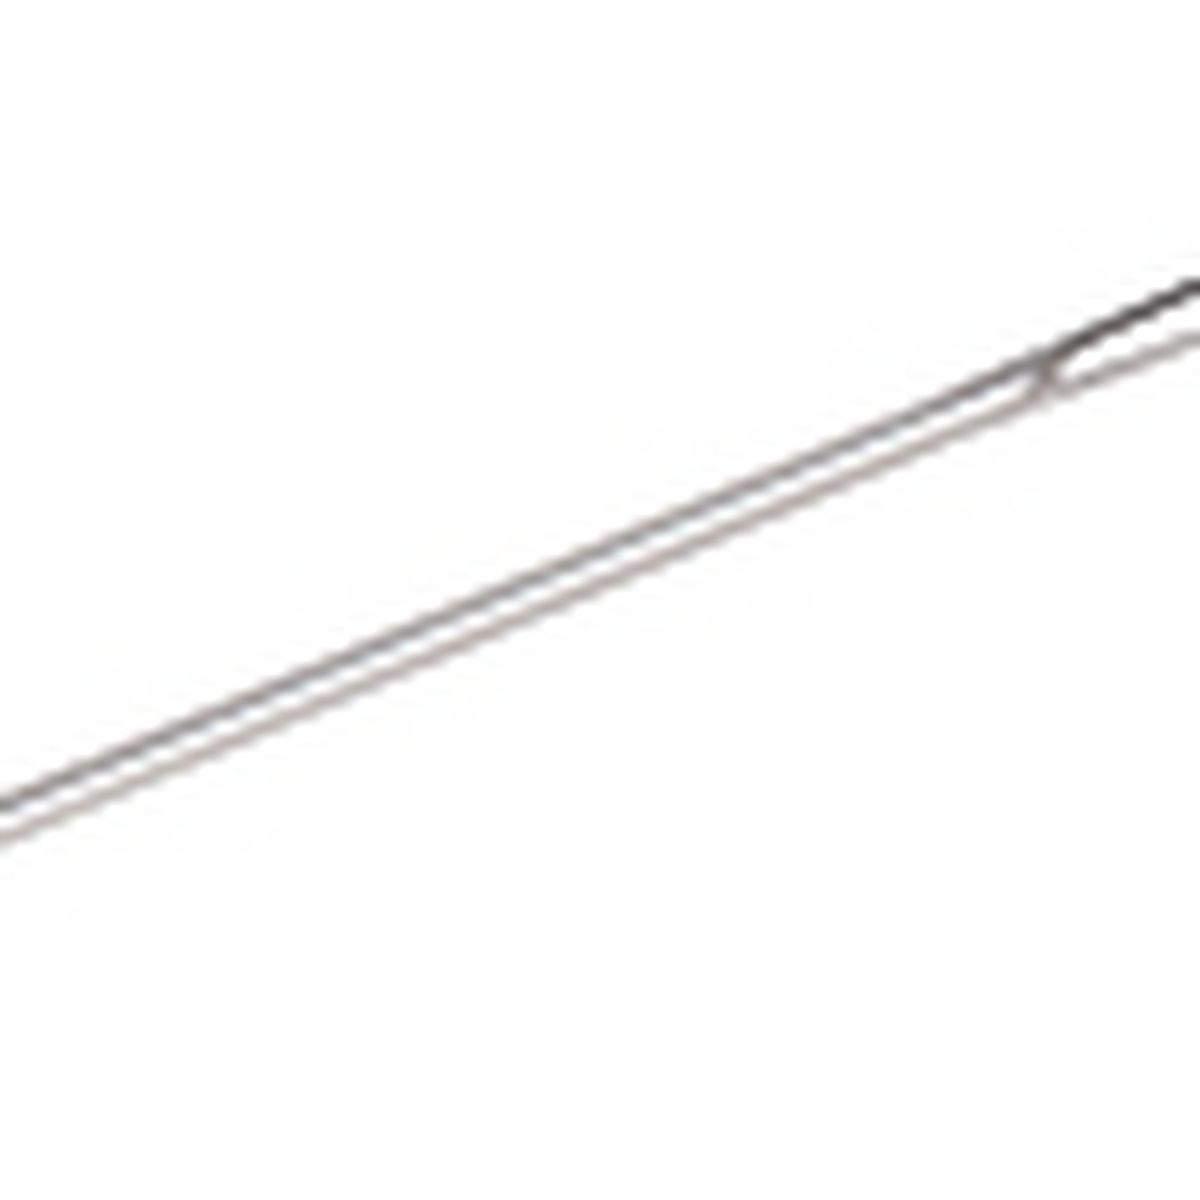 sewing needle for upholstery thread